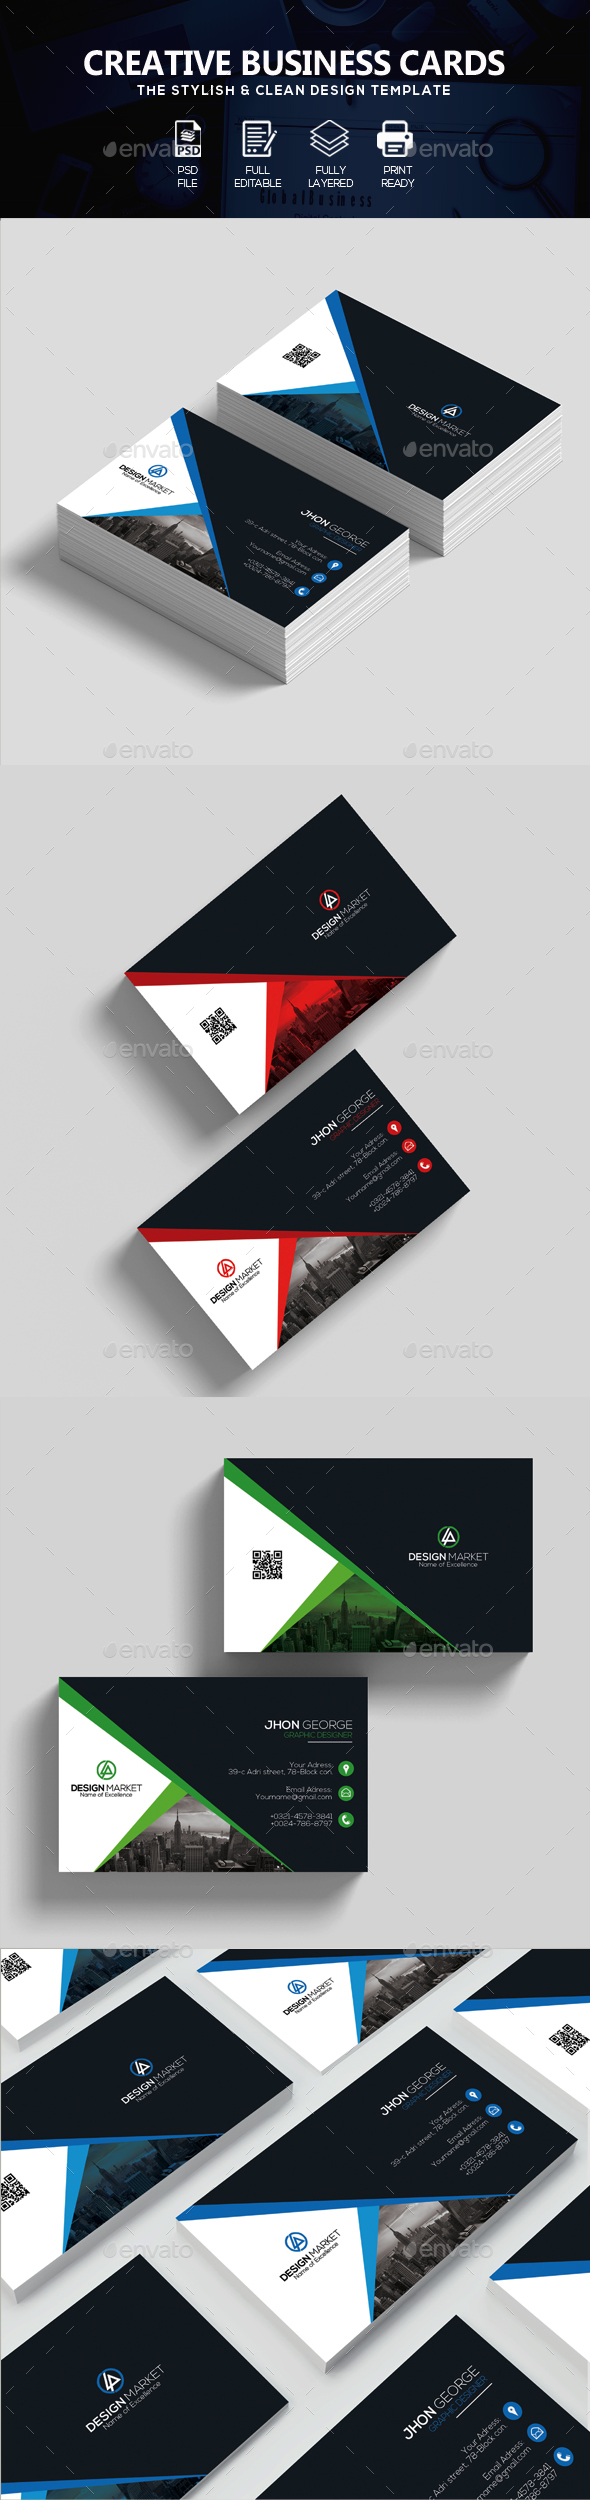 Creative Business Cards - Corporate Business Cards